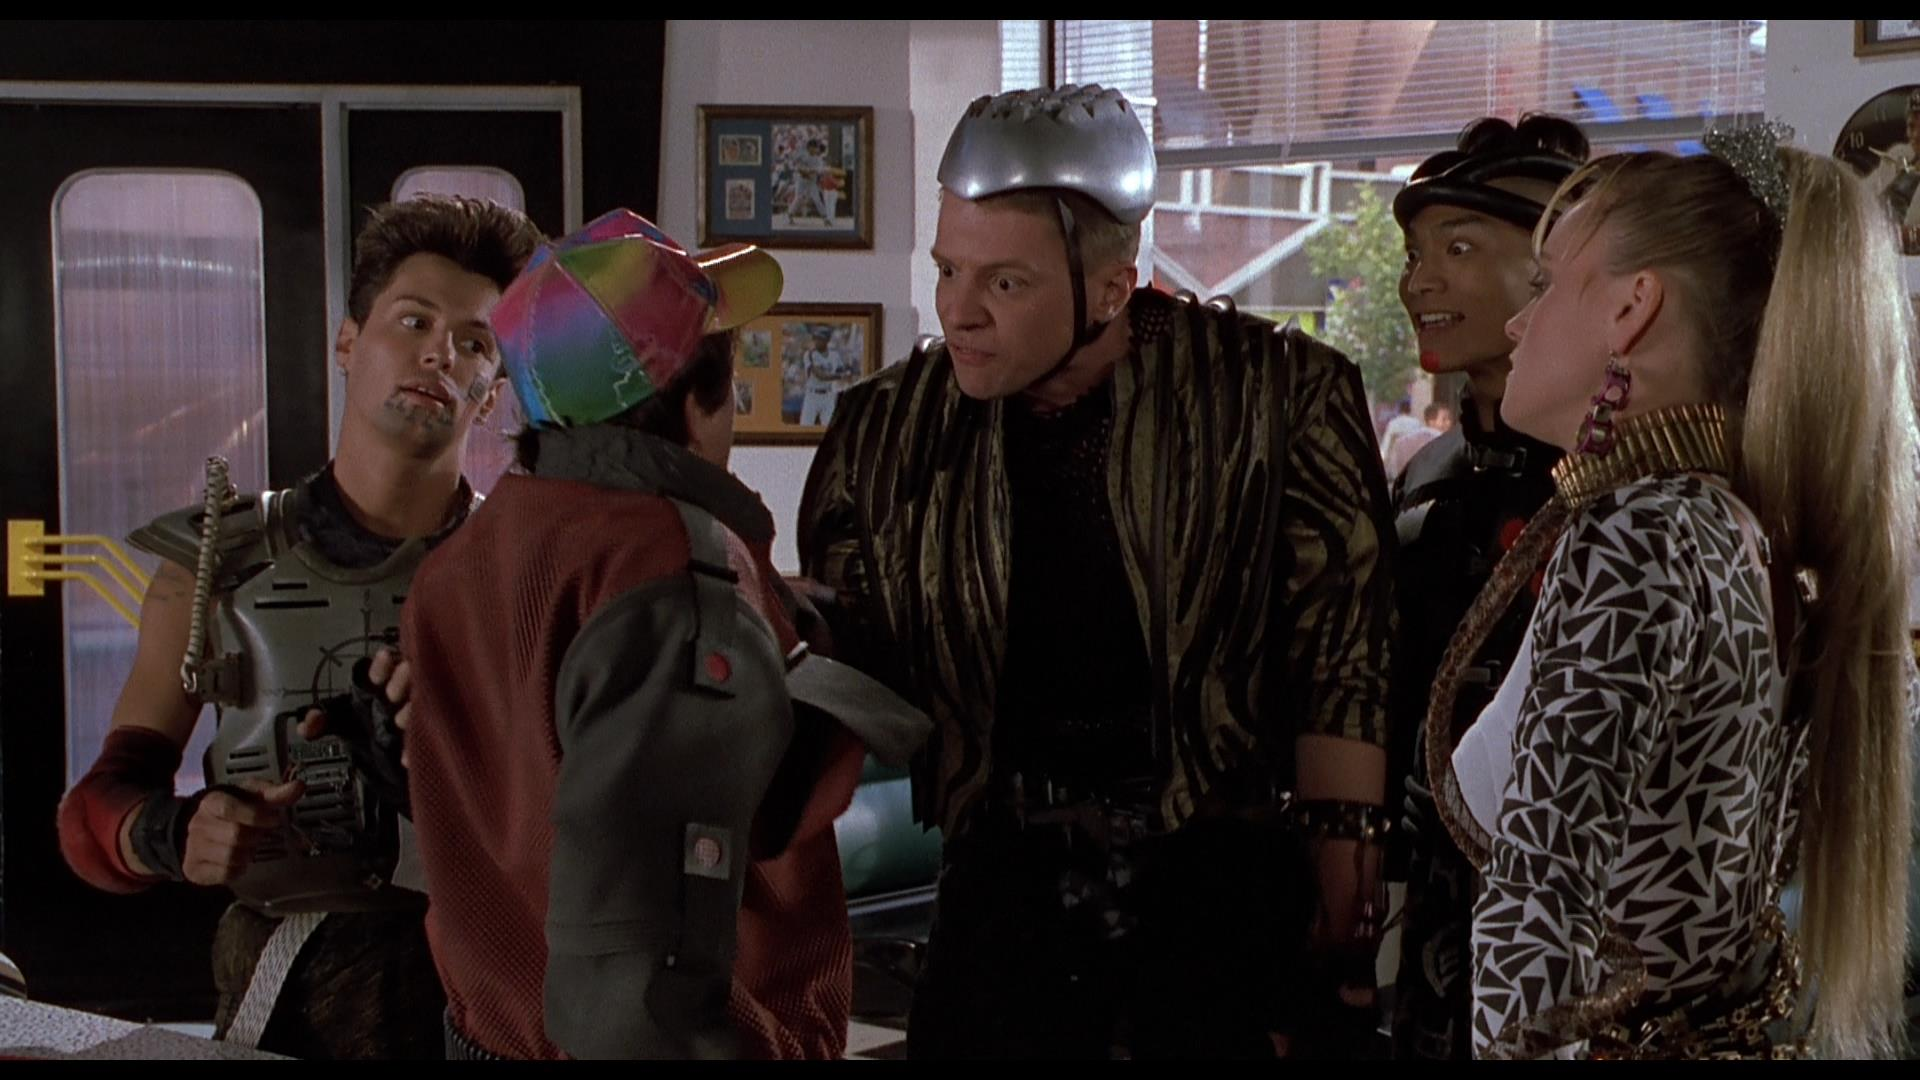 BTTF2 - Bionic Implants